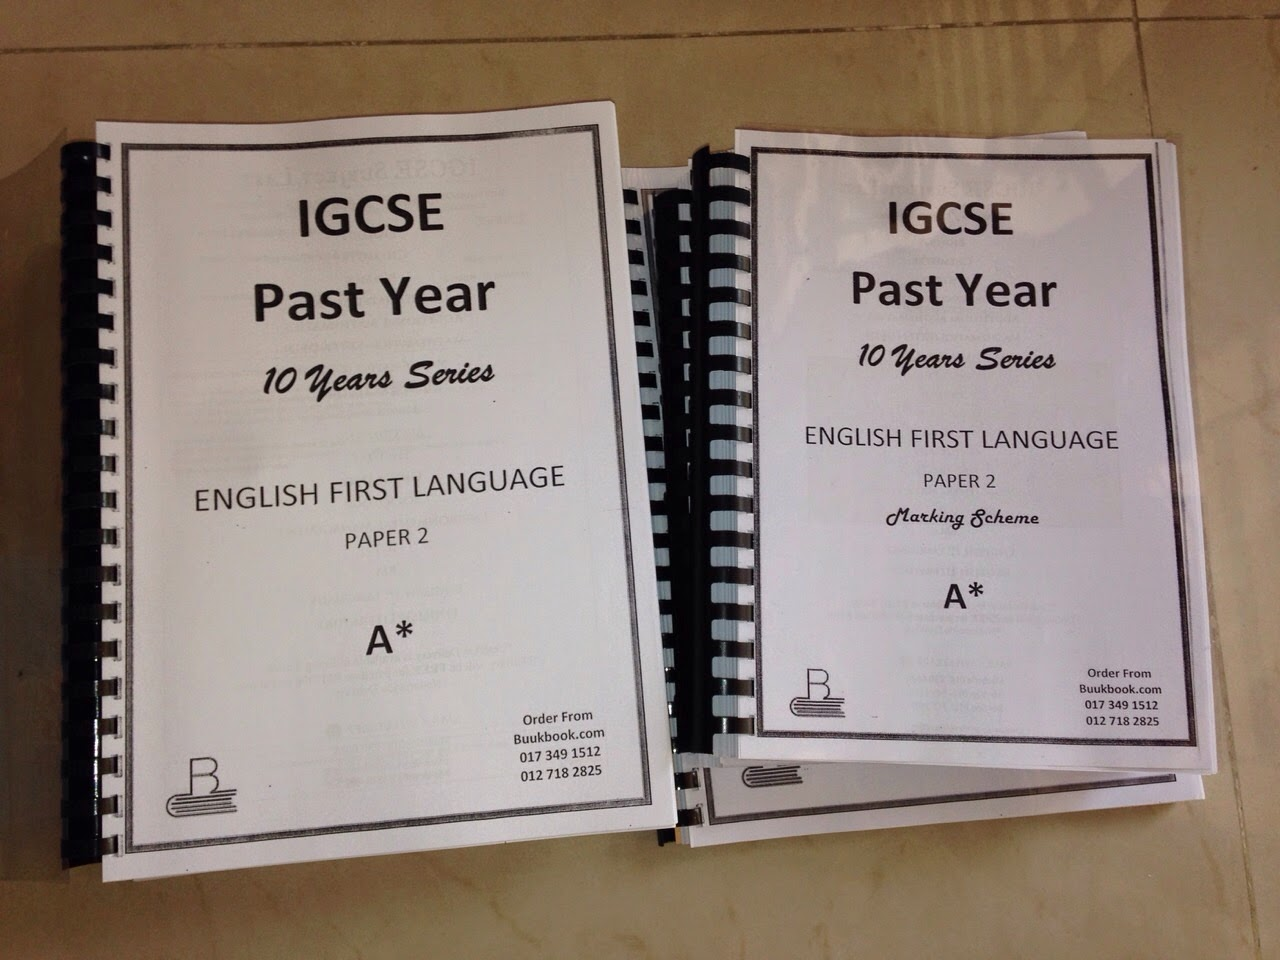 edexcel igcse english literature past papers 2012 Download and read edexcel igcse english literature past papers 2012 edexcel igcse english literature past papers 2012 the ultimate sales letter will provide you a distinctive book to.